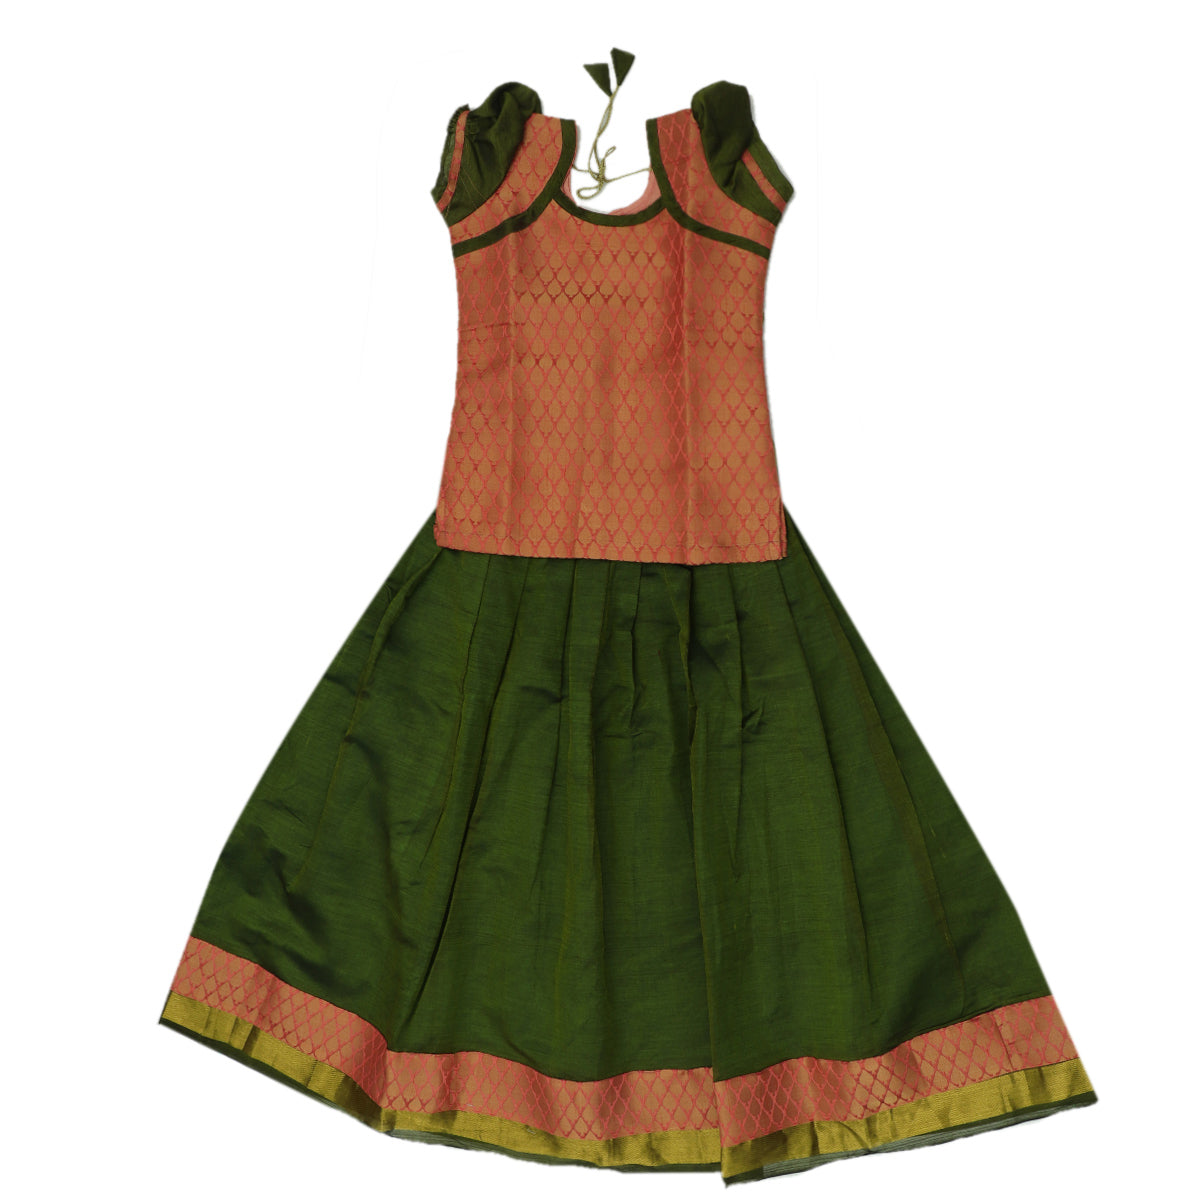 Paavadai Sattai - Peach brocade blouse and Mehandi Green with Simple Zari border ( 8 years)